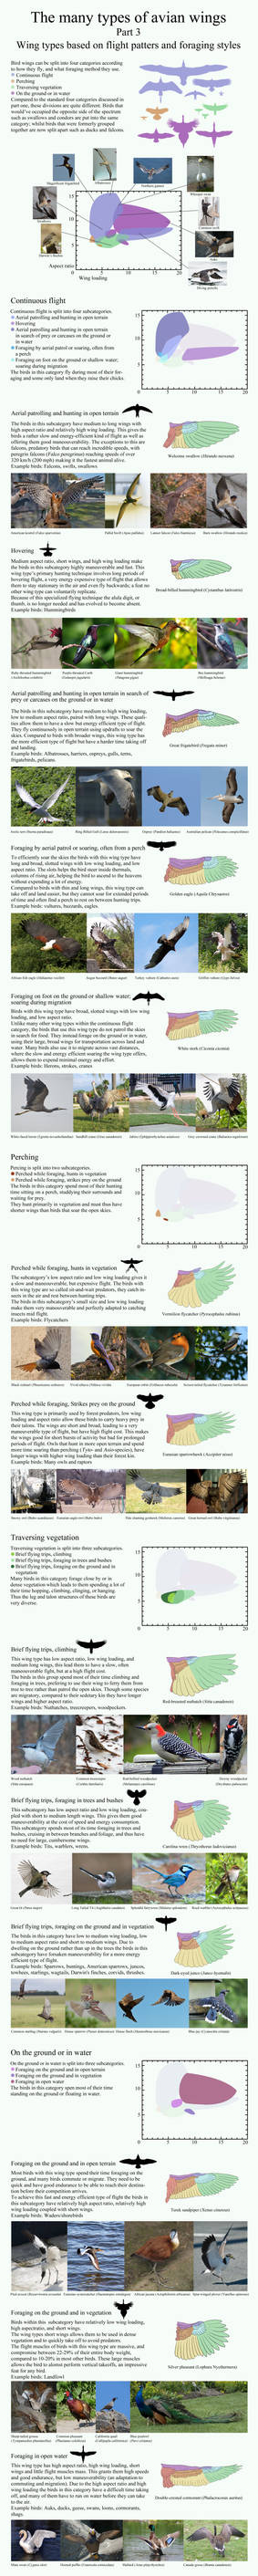 The many types of avian wings. part 3